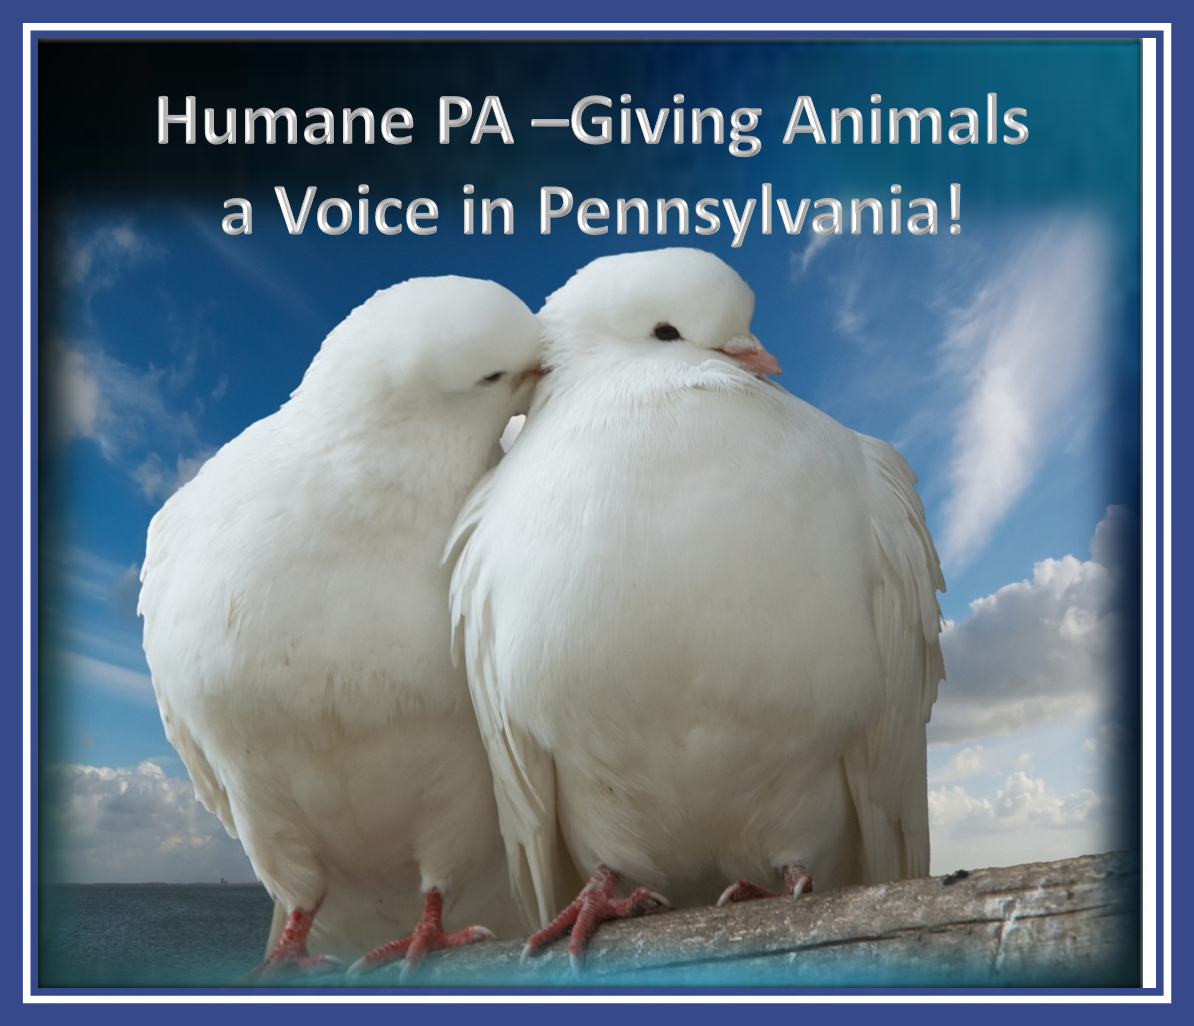 Humane pa sample letters to the editor ending pigeon shoots there is currently a bill languishing in the state senate sb 612 that would ban cruel live pigeon shoot contests opponents of the bill try to spin to altavistaventures Images